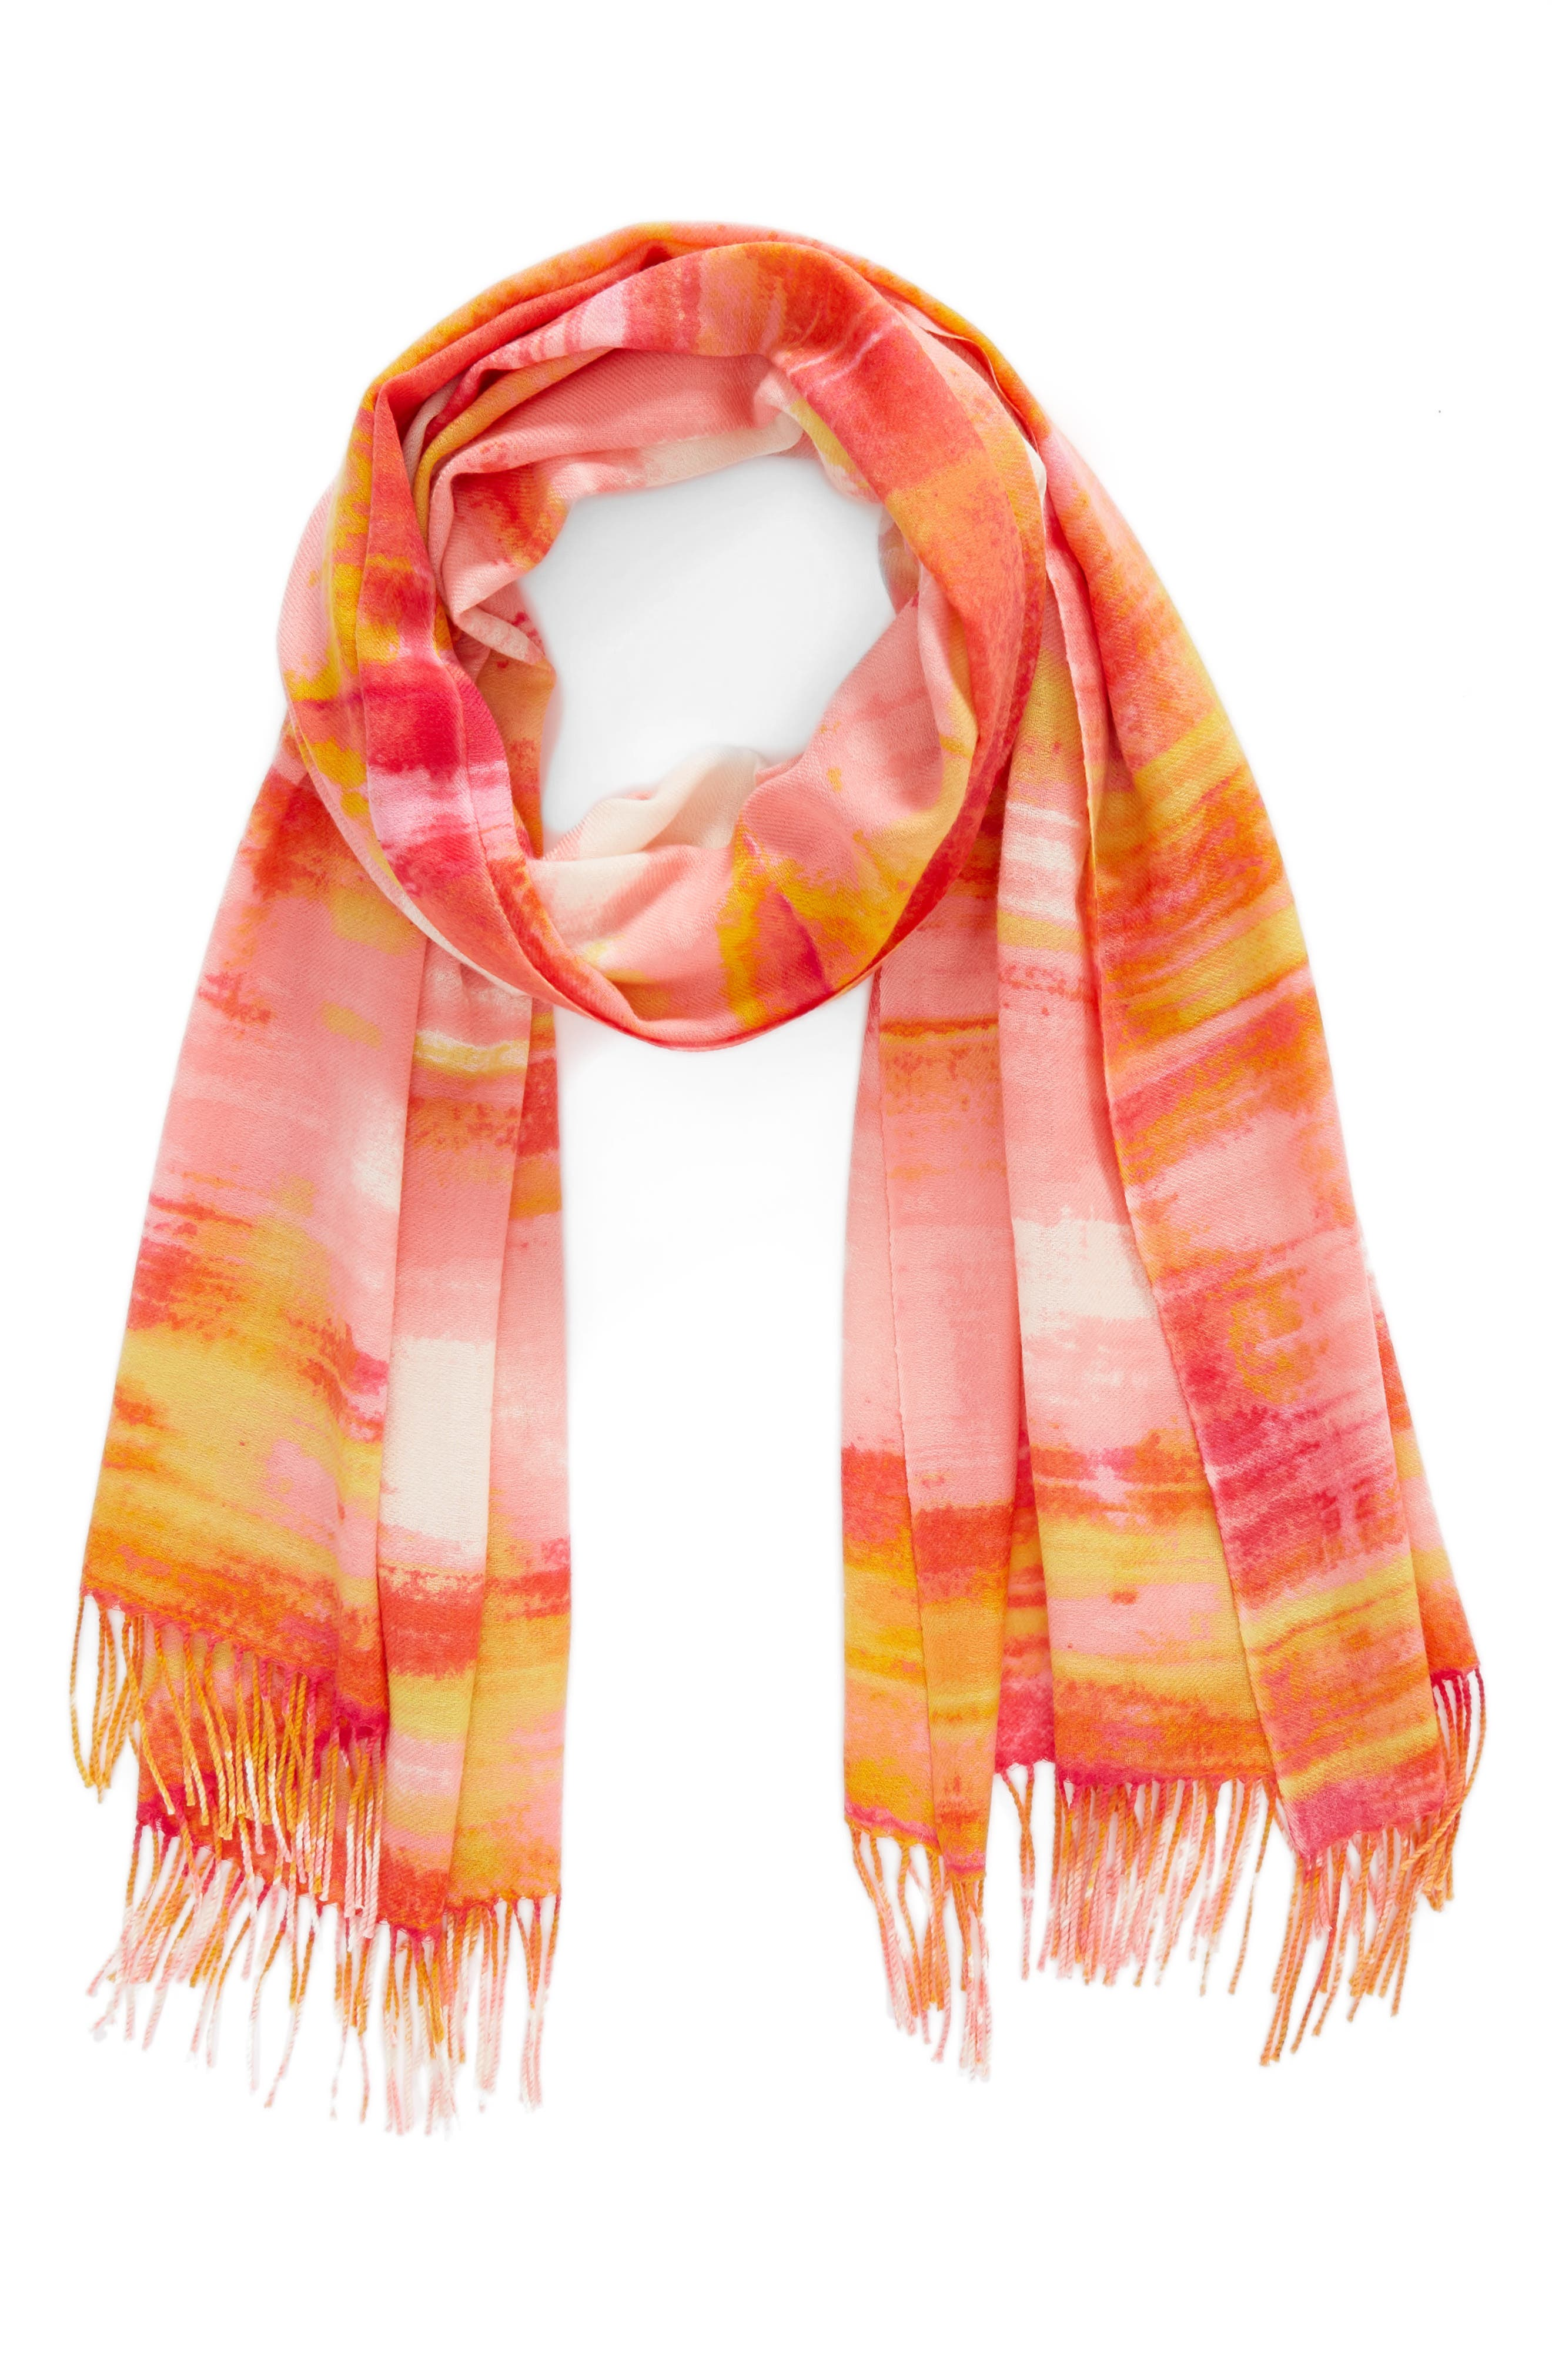 Tissue Print Wool & Cashmere Wrap Scarf,                             Alternate thumbnail 2, color,                             Pink Rainwater Plaid Print